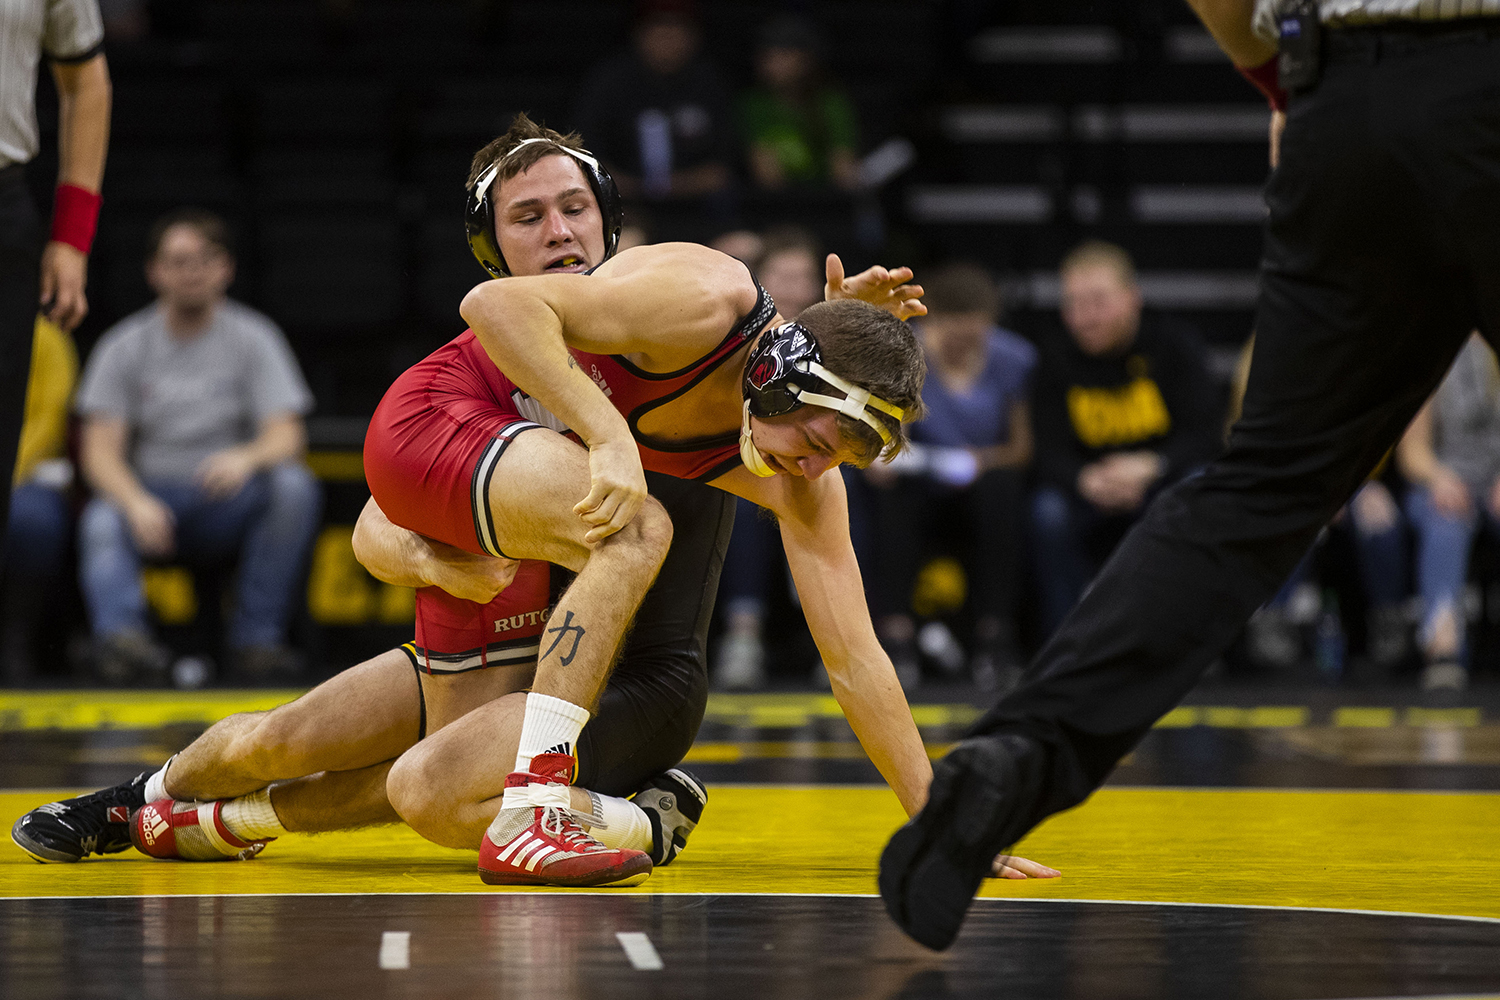 Iowa's No. 2 Spencer Lee wrestles Rutgers' Nick Denora at 125 during the Iowa/Rutgers wrestling meet at Carver-Hawkeye Arena on Friday, January 18, 2019. Lee defeated Denora, 6-0. The Hawkeyes defeated the Scarlet Knights, 30-6. (Lily Smith/The Daily Iowan)